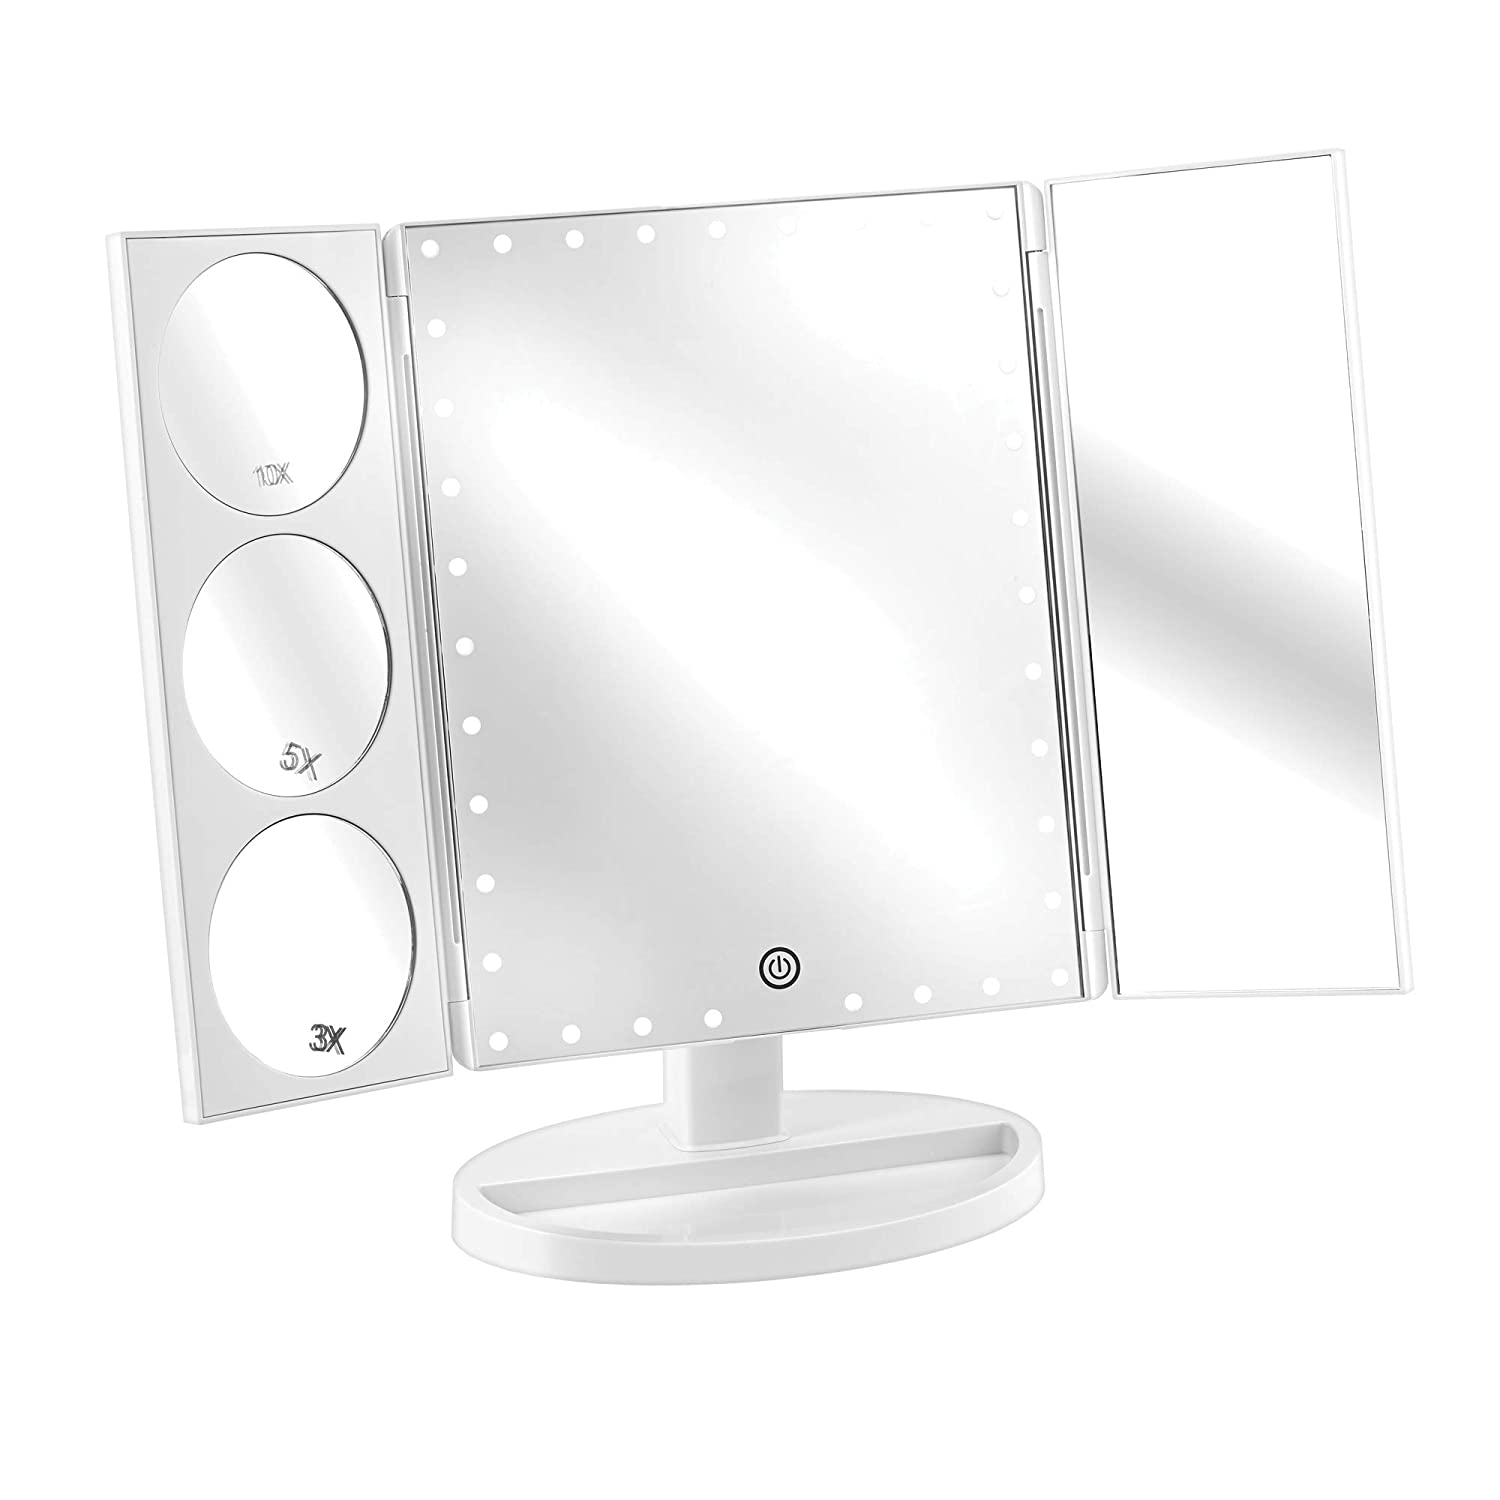 Trifold LED Vanity Makeup Mirror Three Panel Lighted Mirror with Stand for a Table Top, Vanity, Dorm or Desk, 21 LED Lights, 2x 3x Magnification, Touchscreen, White